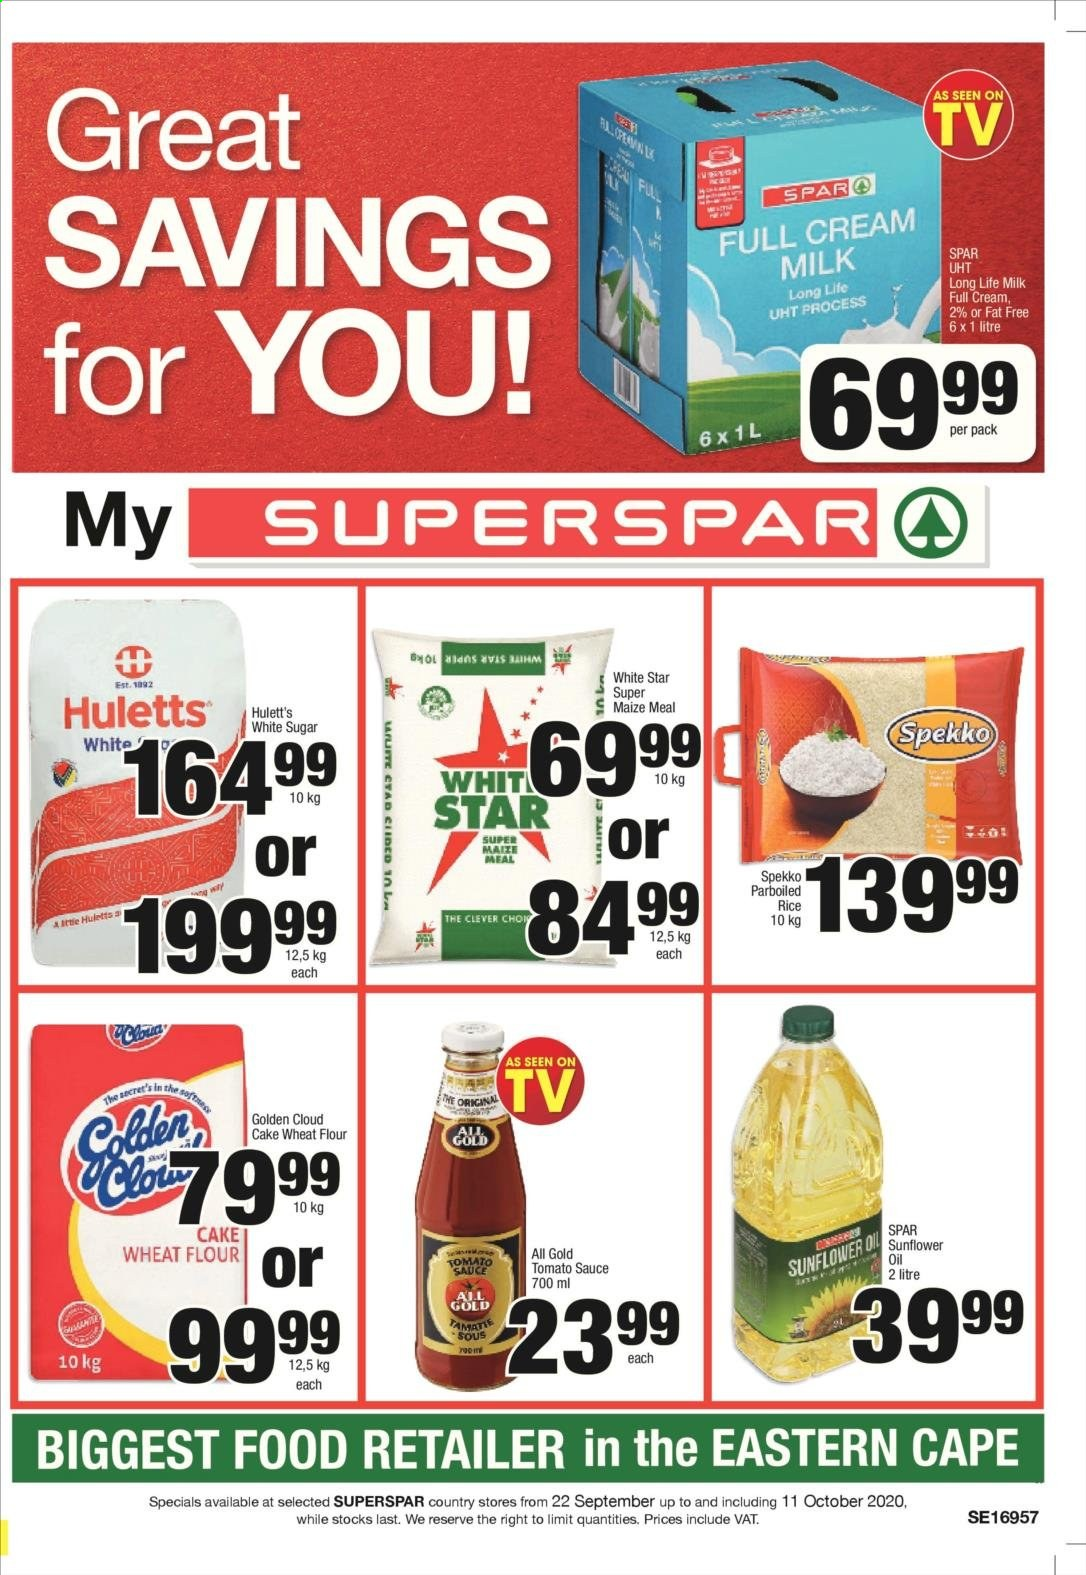 SPAR catalogue  - 09.22.2020 - 10.11.2020 - Sales products - cream, flour, milk, rice, secret, sugar, sunflower oil, tomato sauce, wheat flour, sauce, sunflower, parboiled rice, cake wheat flour, long life milk, tomato. Page 1.